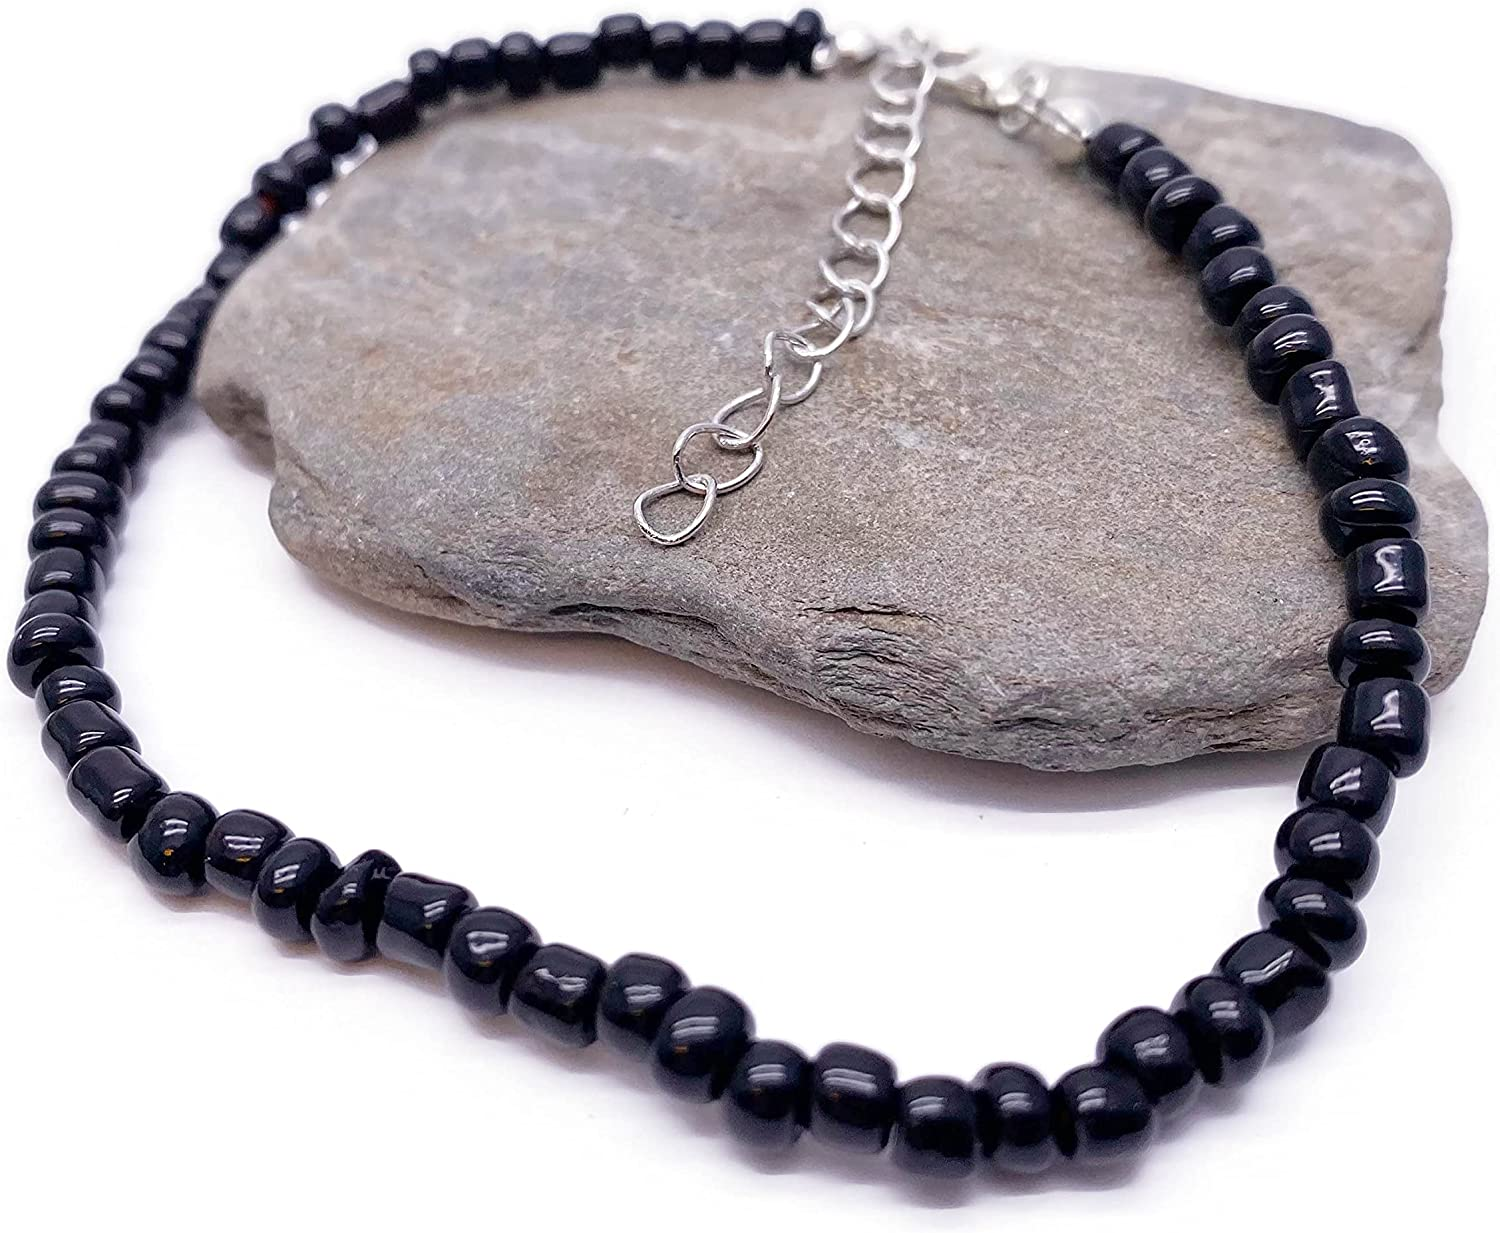 Anklet Plain Black Glass Seed Beads with Lobster Clasp : Adjustable 9-11 inches